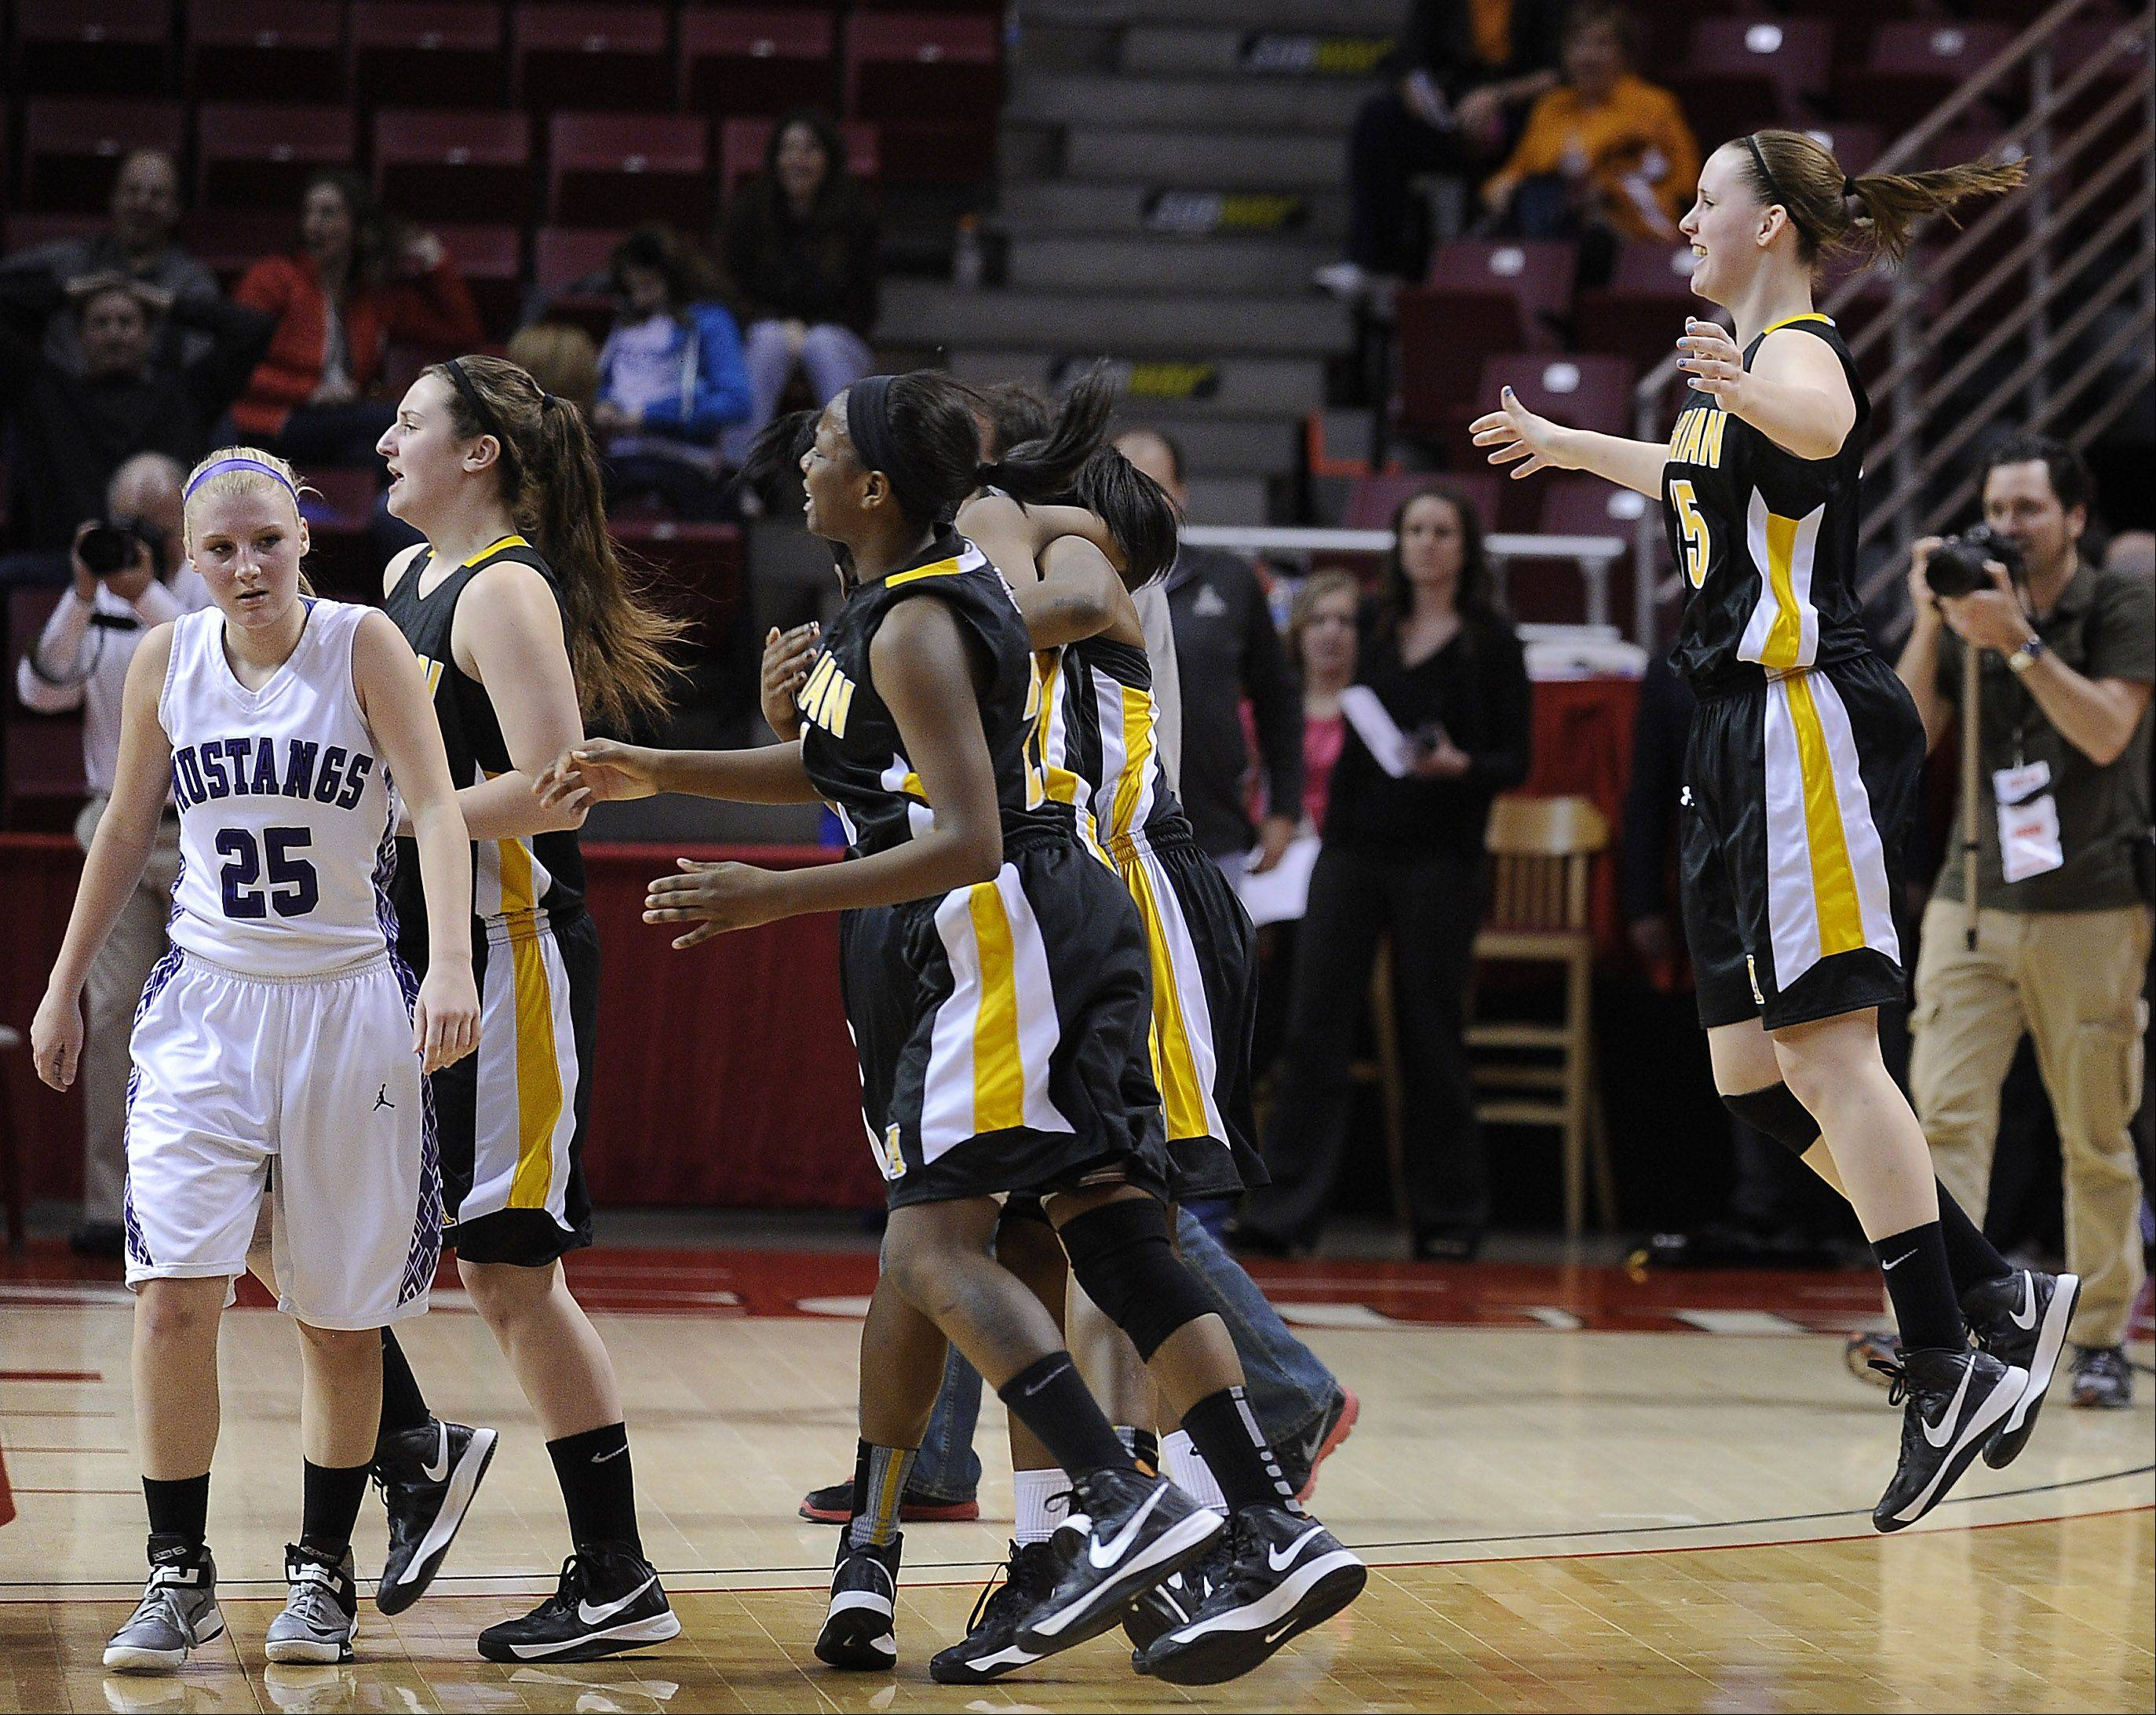 Rolling Meadows Allie Kemph leaves the court in the moments following Marian Catholic's victory in the Class 4A championship game Saturday in Normal.